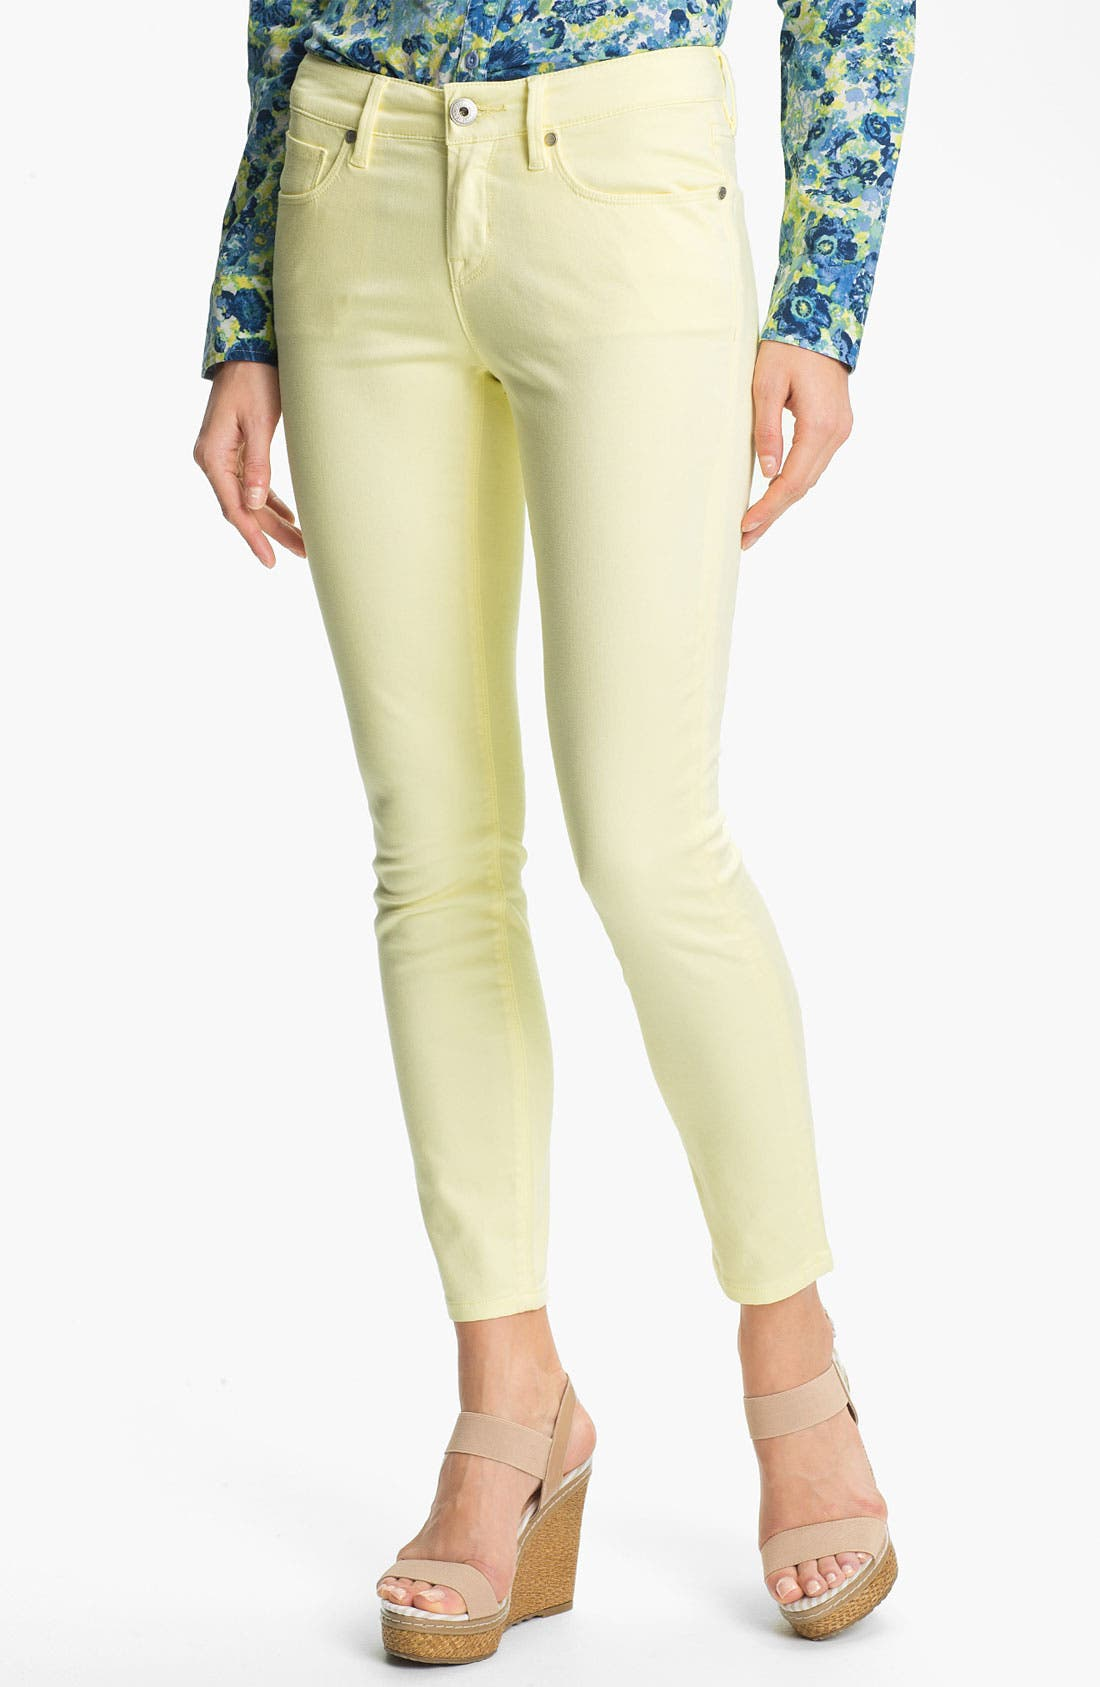 Alternate Image 1 Selected - Isaac Mizrahi Jeans Colored Skinny Jeans